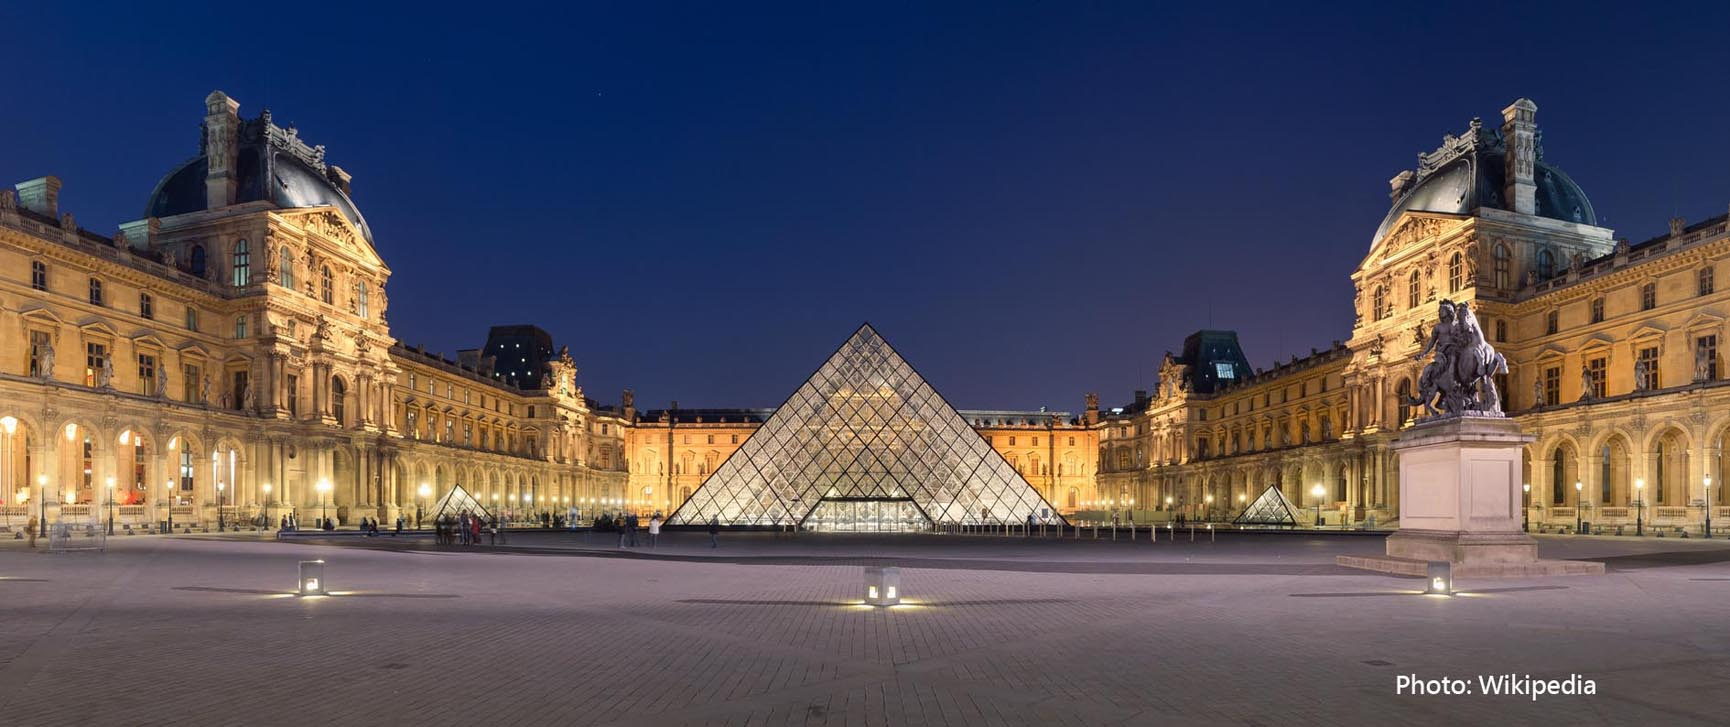 Grand Louvre - Phase I